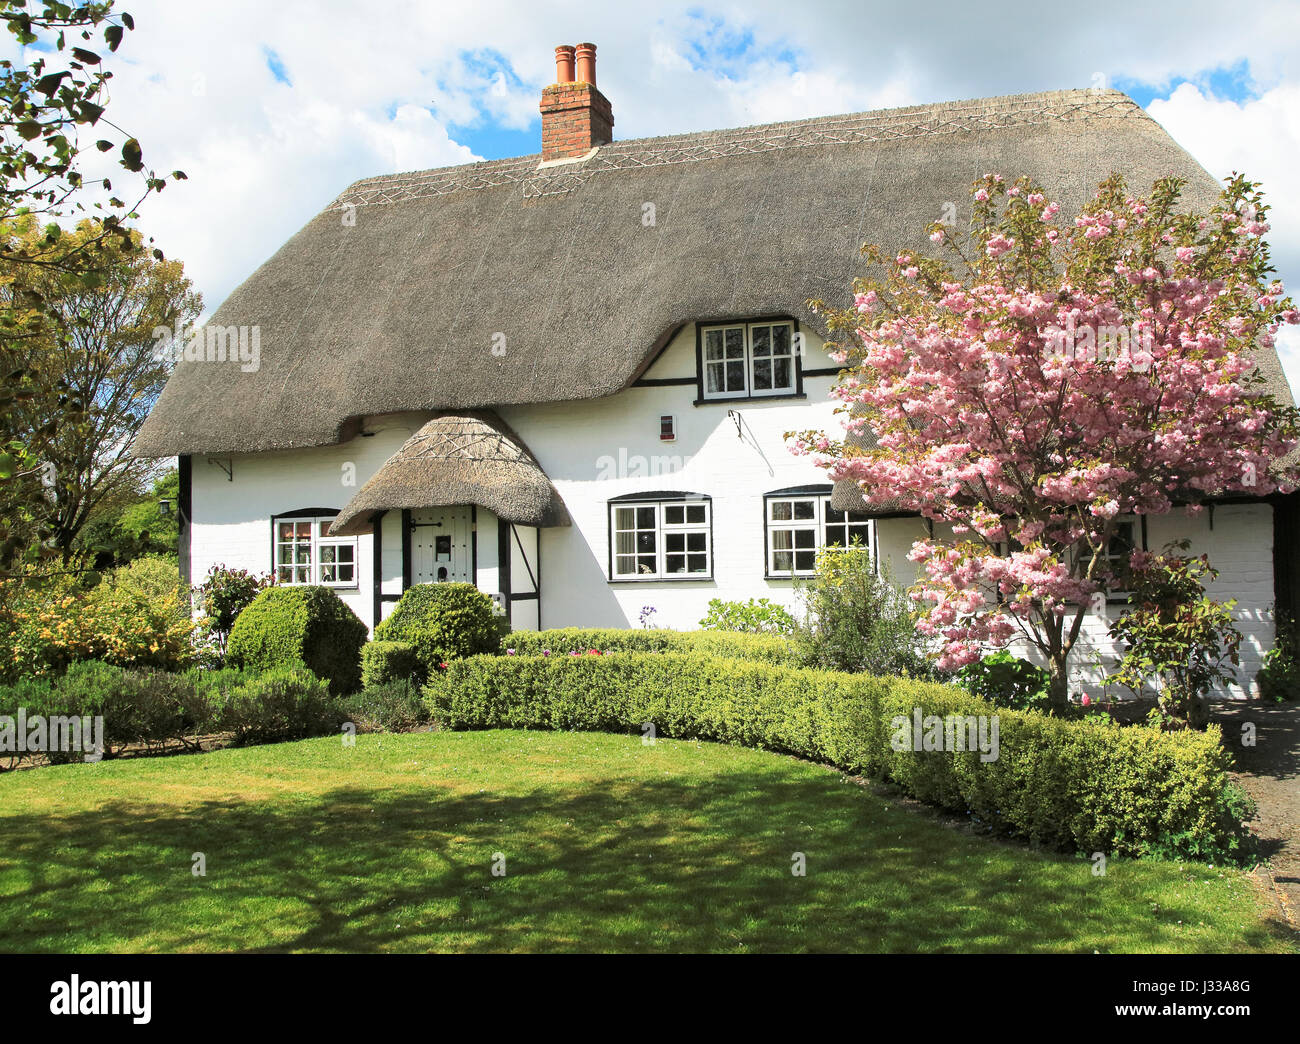 Pretty thatched country cottage and garden, Allington, Wiltshire, England, UK - Stock Image